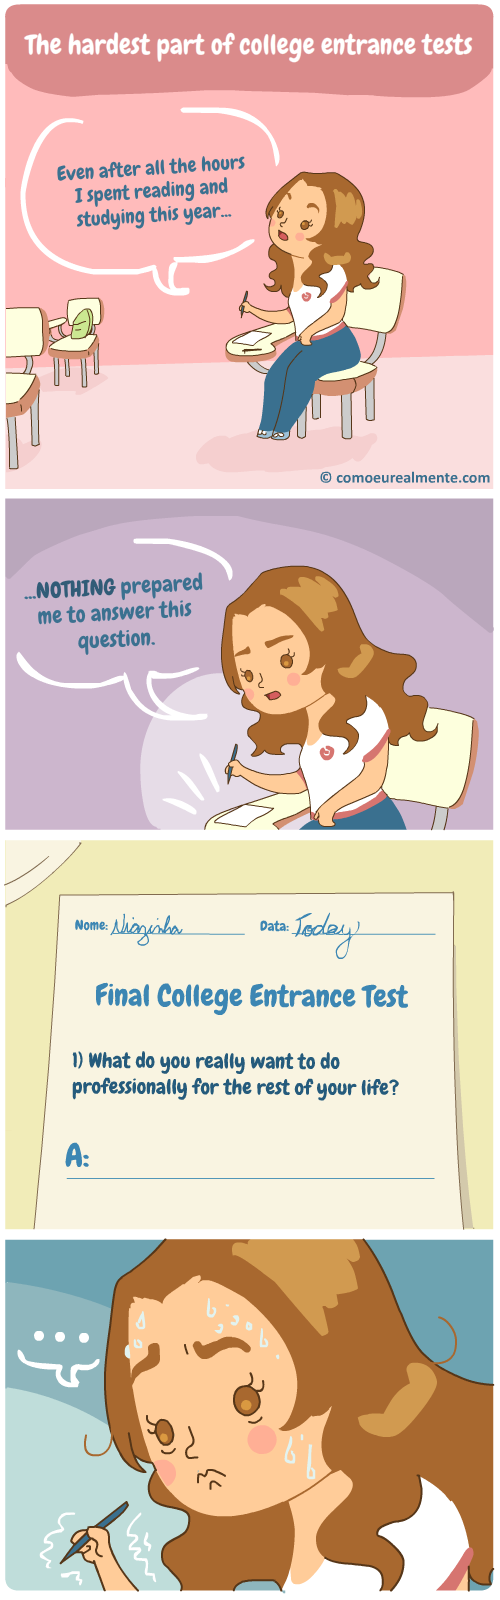 the hardest part of college entrance tests